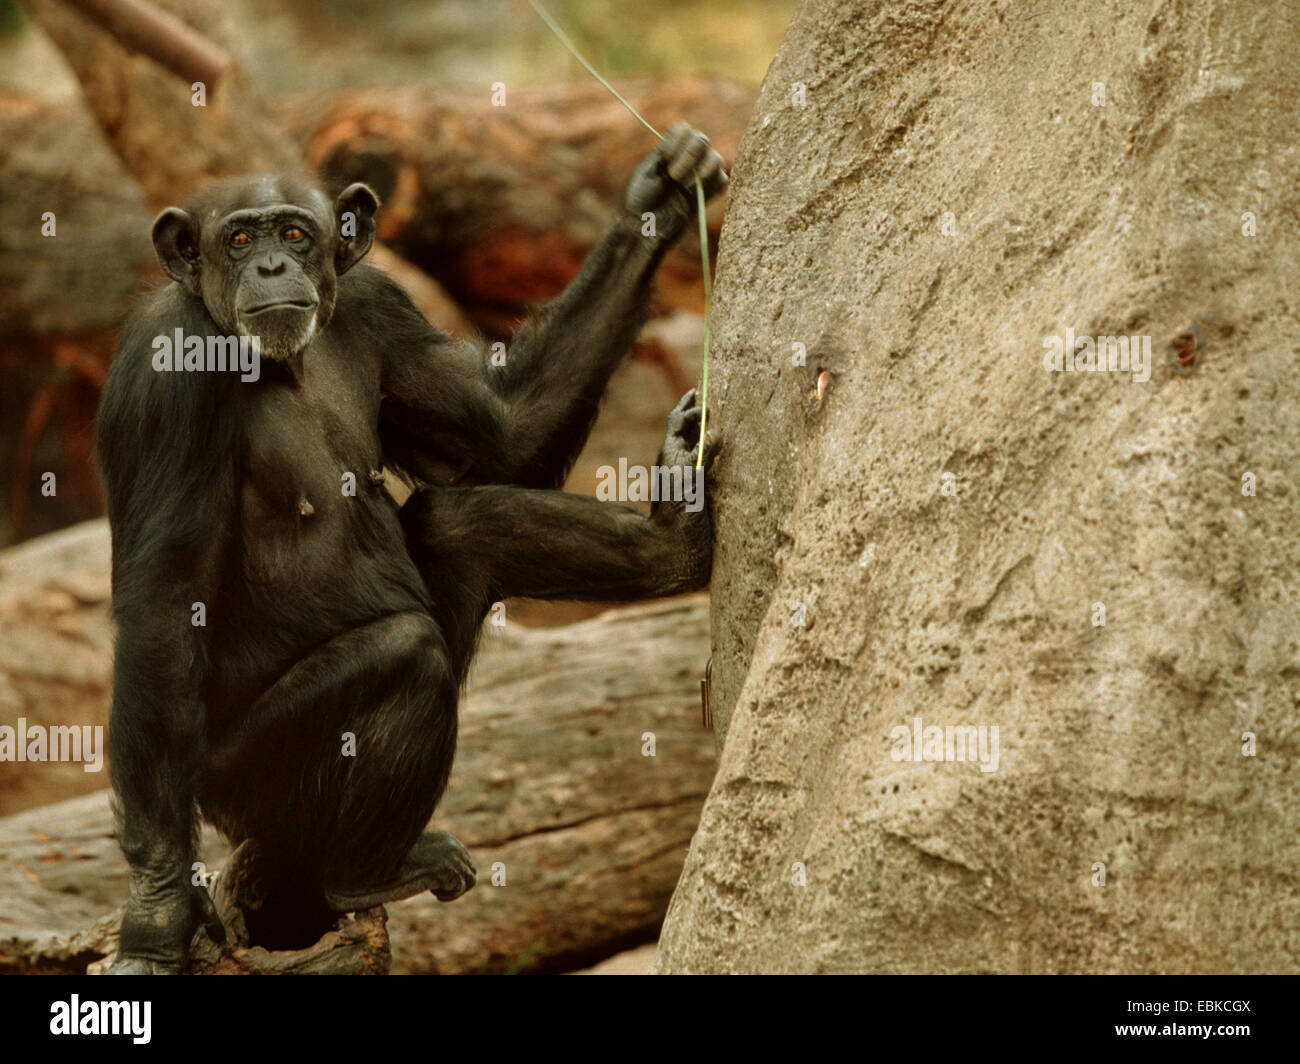 common chimpanzee (Pan troglodytes), Tool use by a chimpanzee, animal with wireat a artifical termite hill - Stock Image